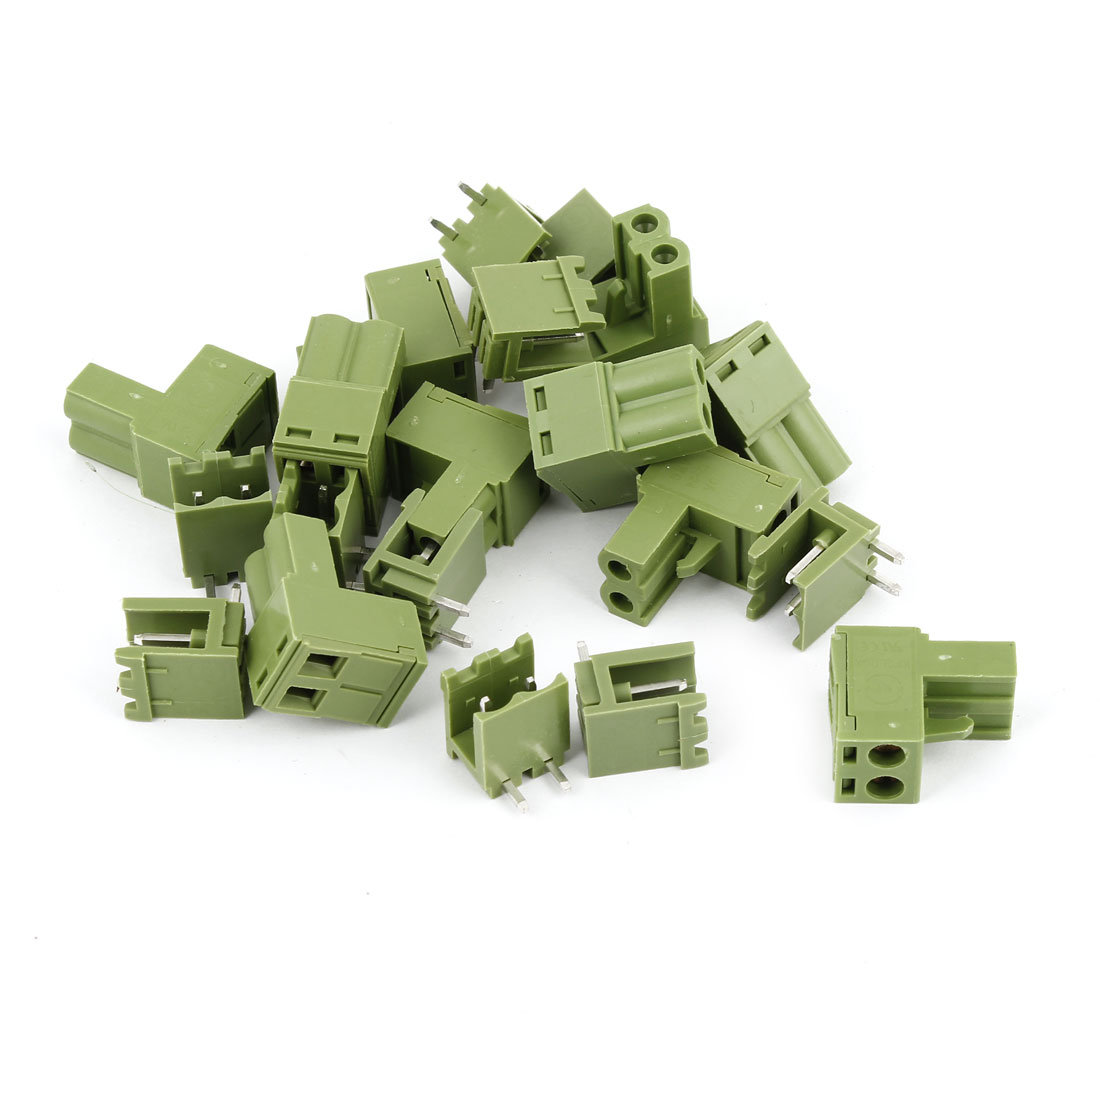 10 Pcs Army Green 300V 10A 5.08mm Pitch 2P Way Printed Circuit Board PBC Screw Terminal Barrier Block Connector